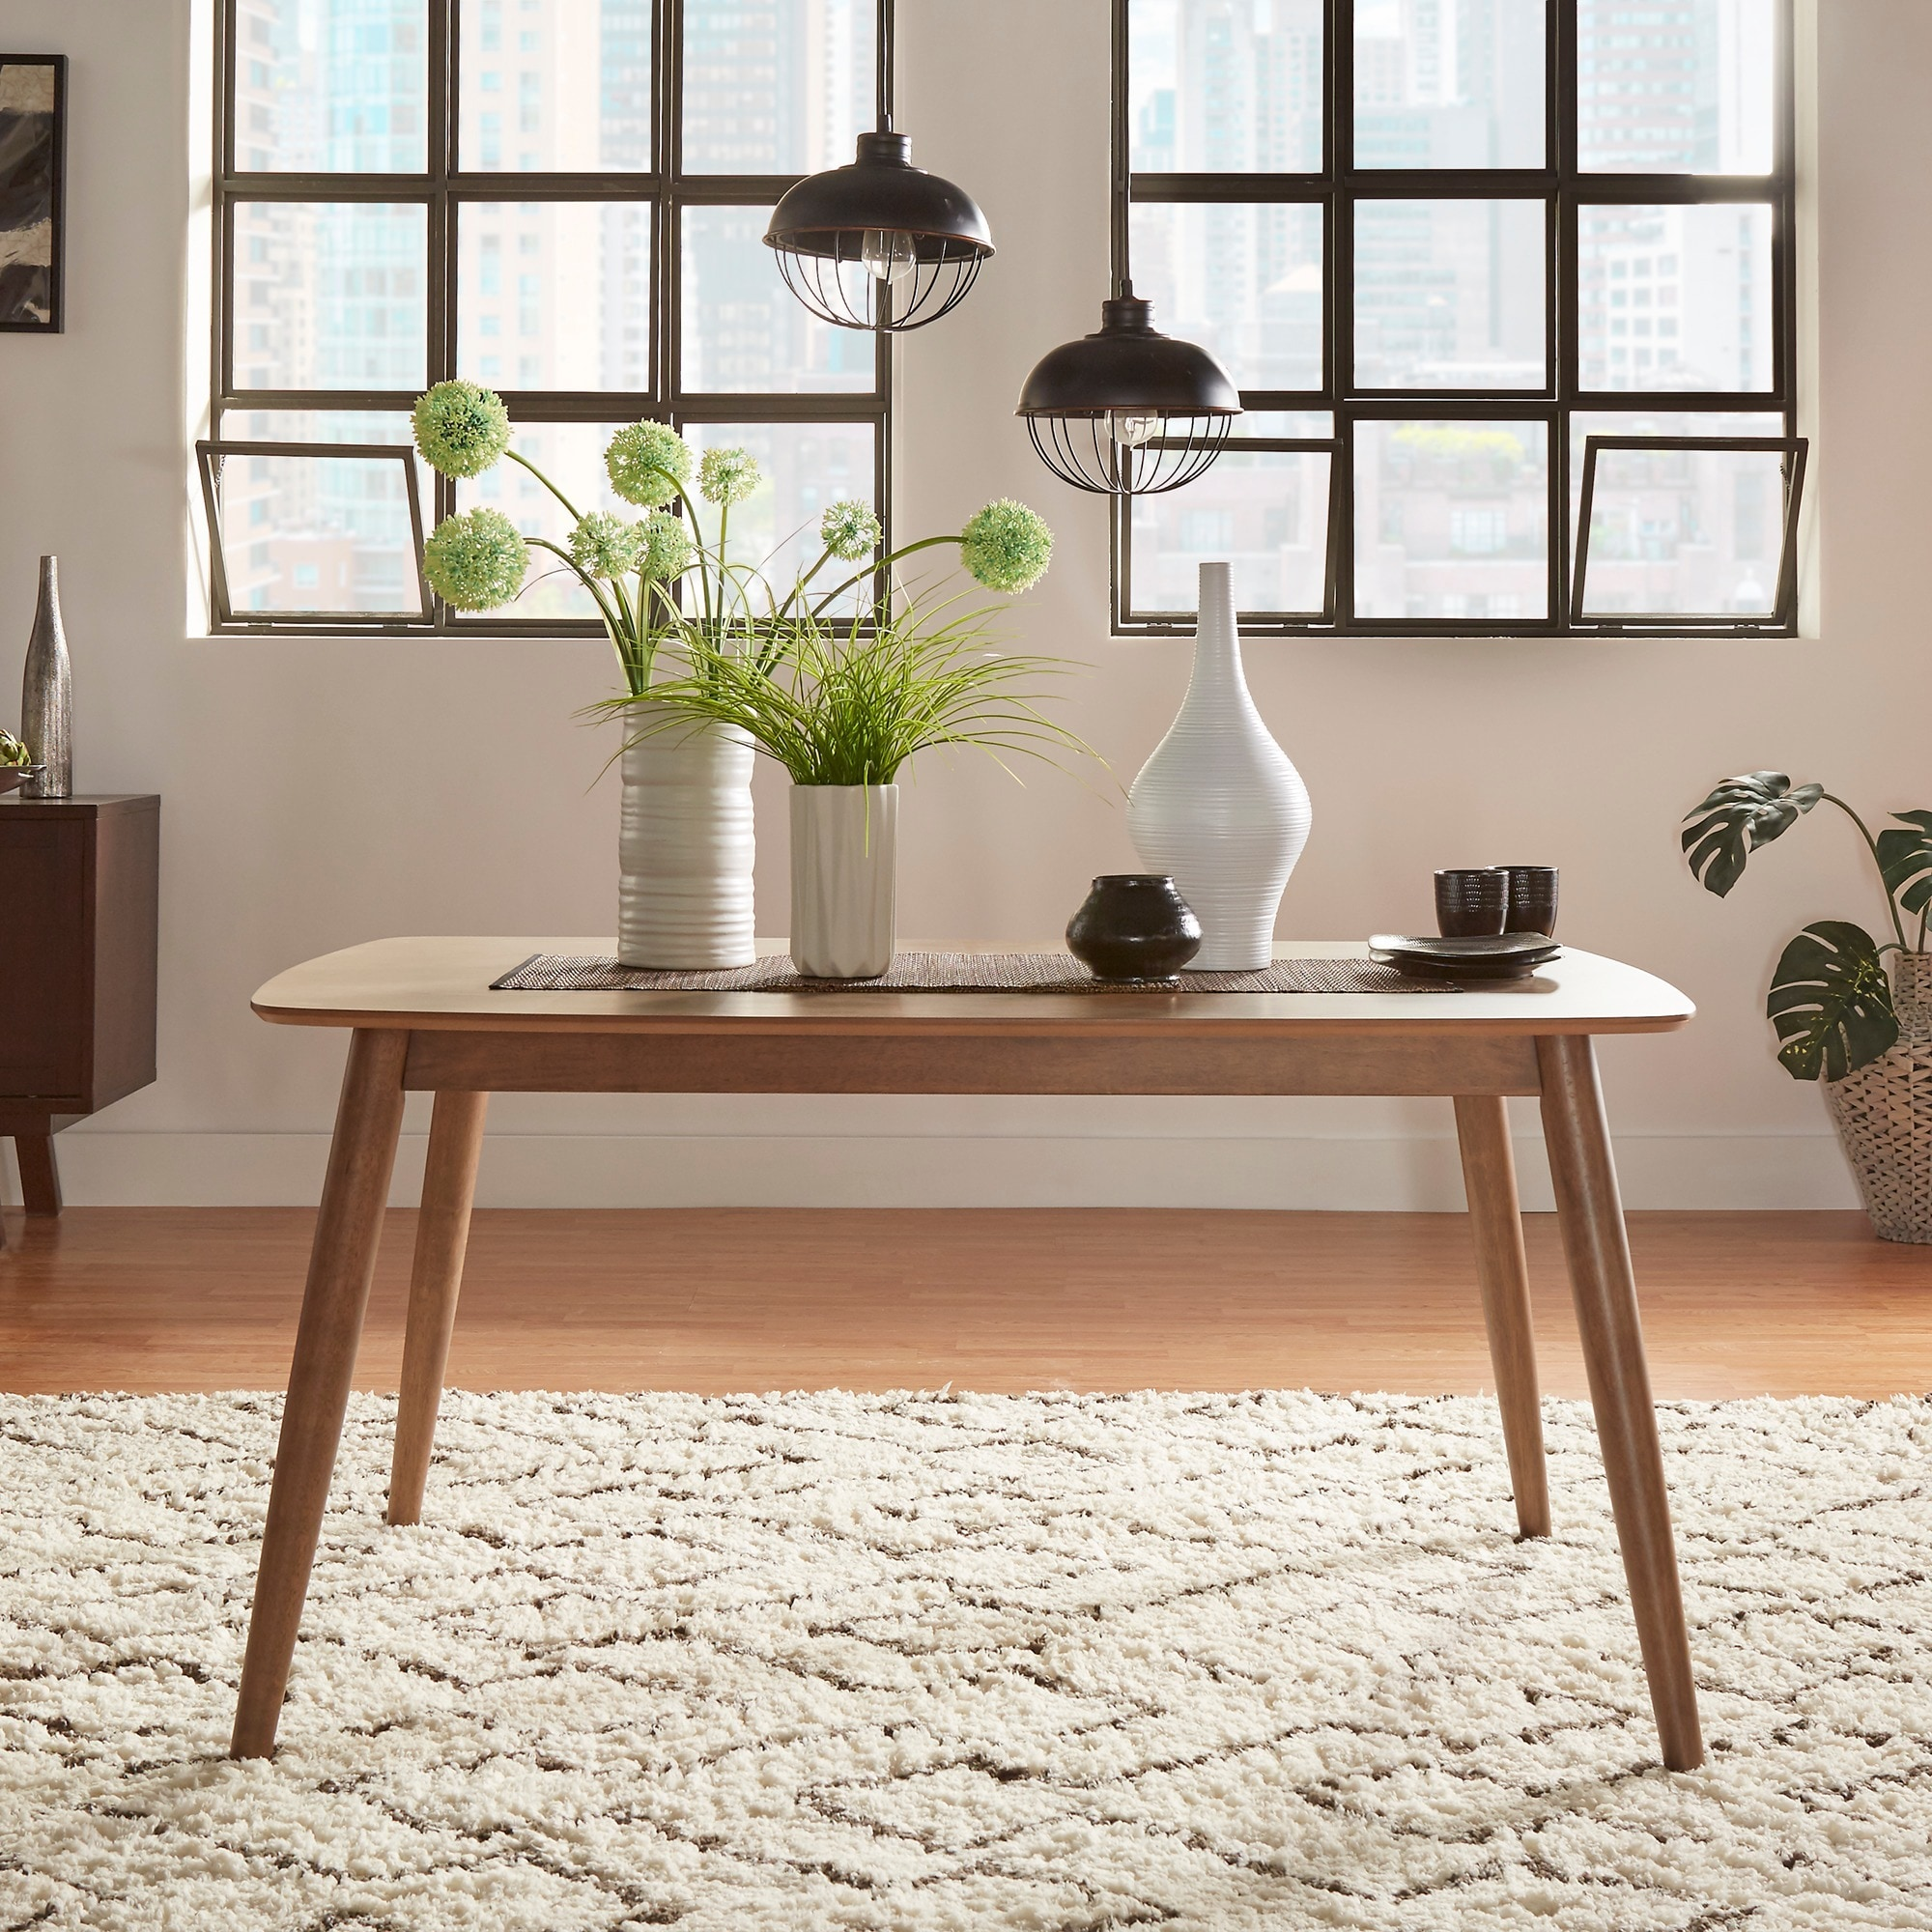 Norwegian Mid Century Danish Modern Tapered Dining Table iNSPIRE Q Modern -  Free Shipping Today - Overstock.com - 19675538